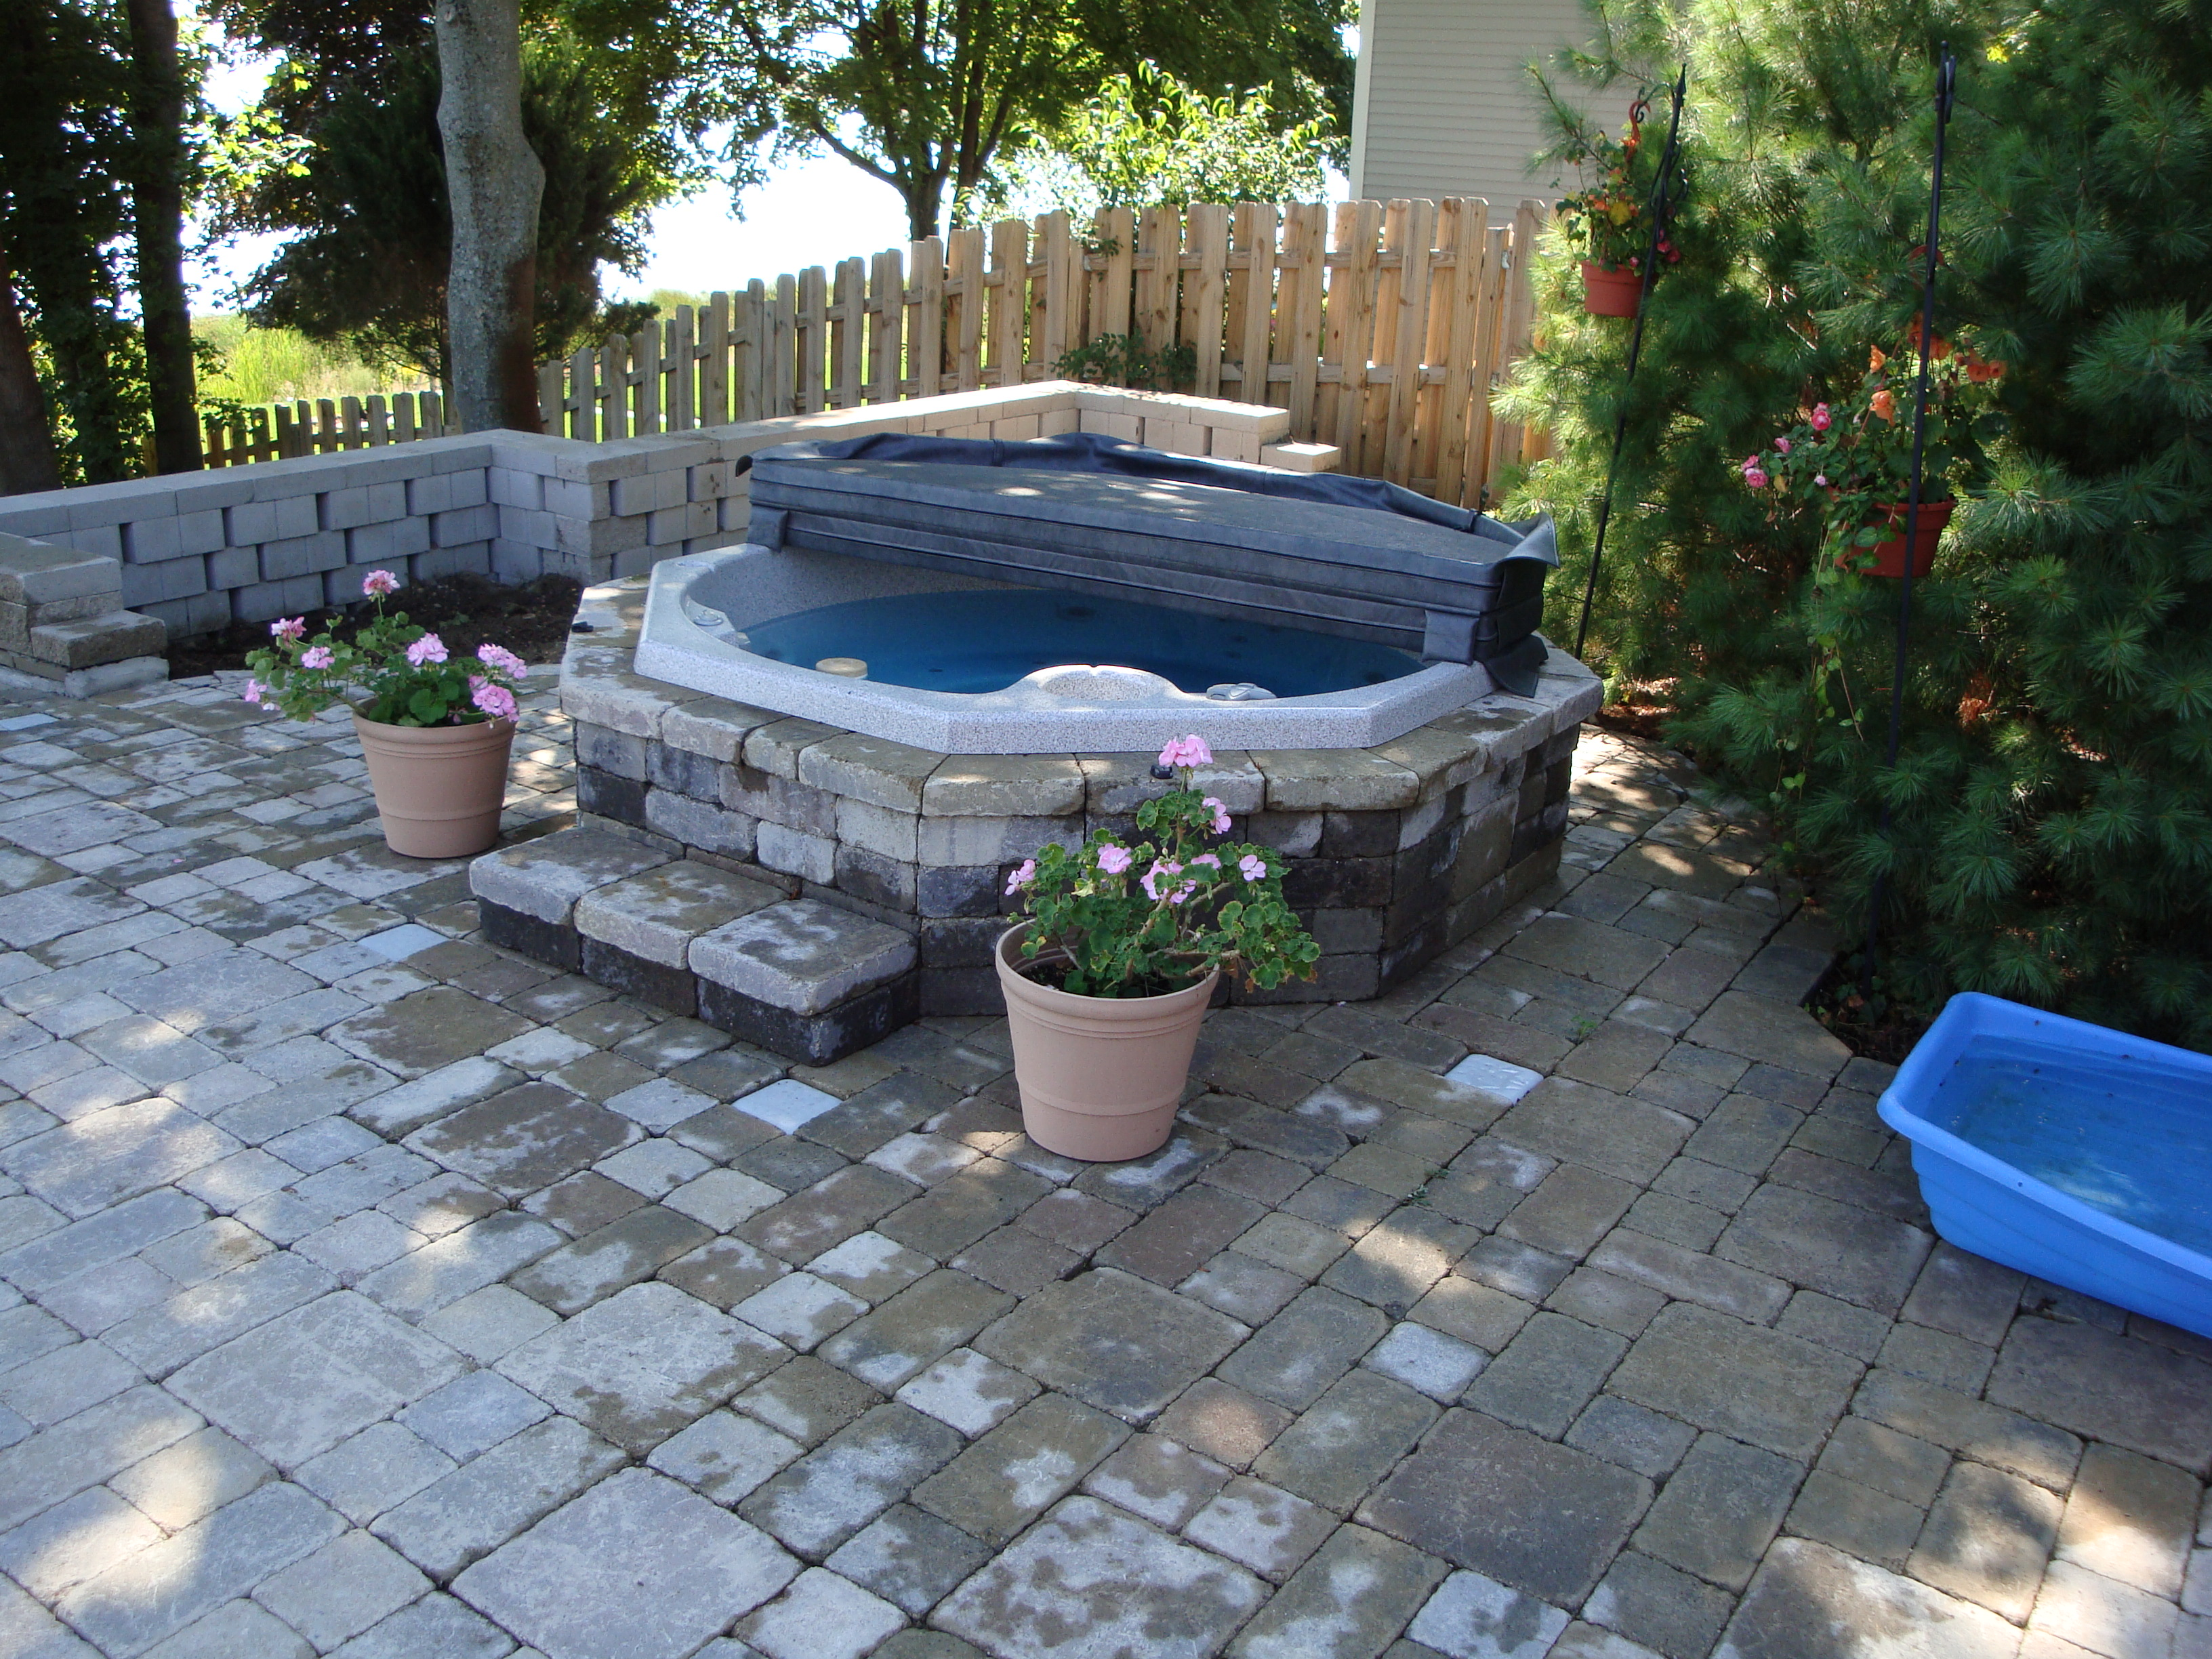 Superbe York Paver Patio Hot Tub